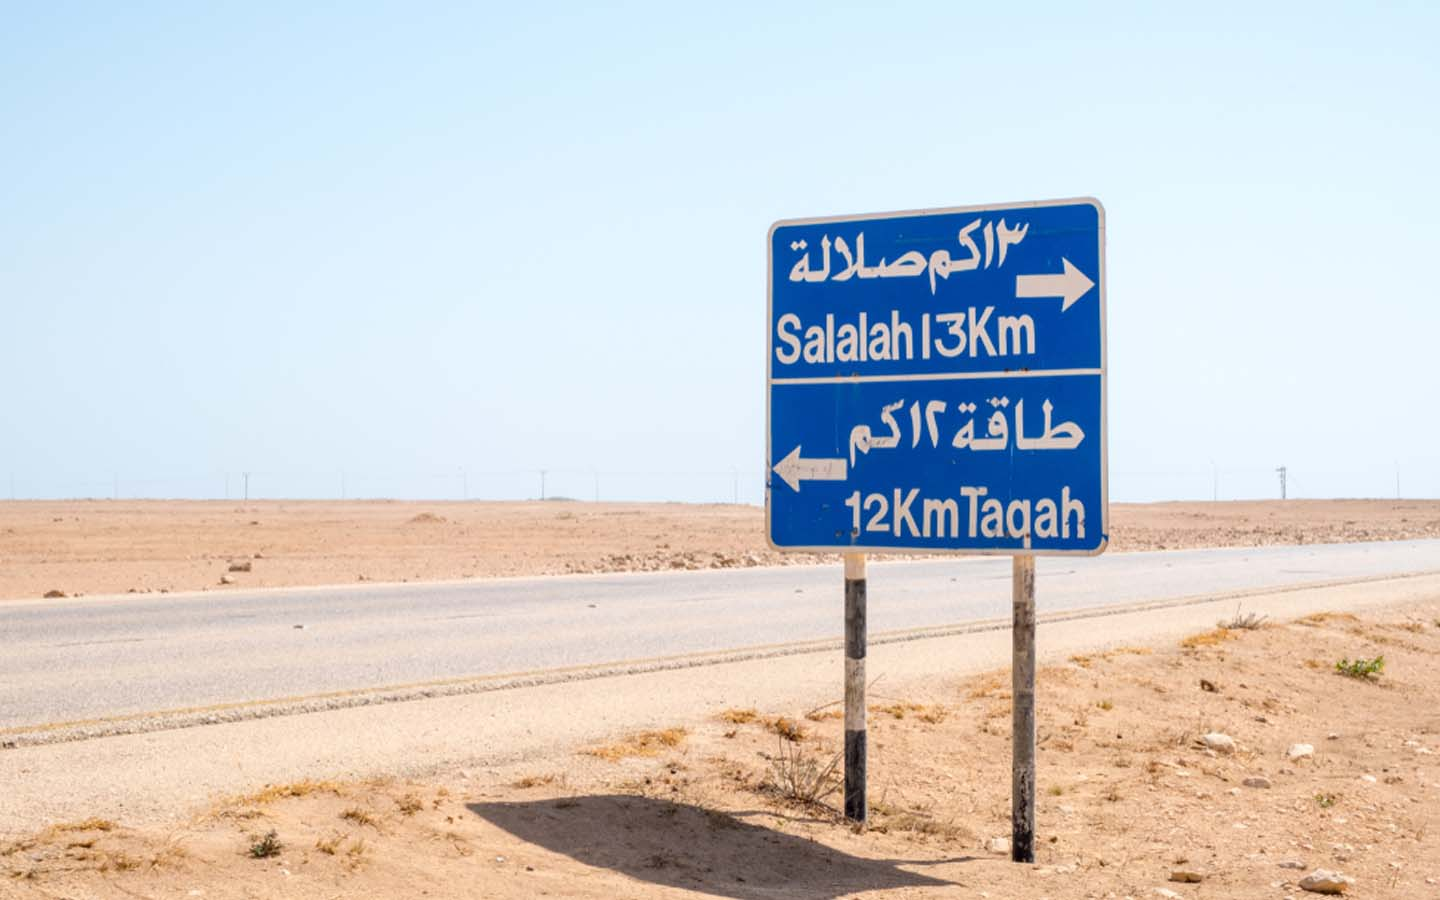 road sign with directions to Salalah in Oman